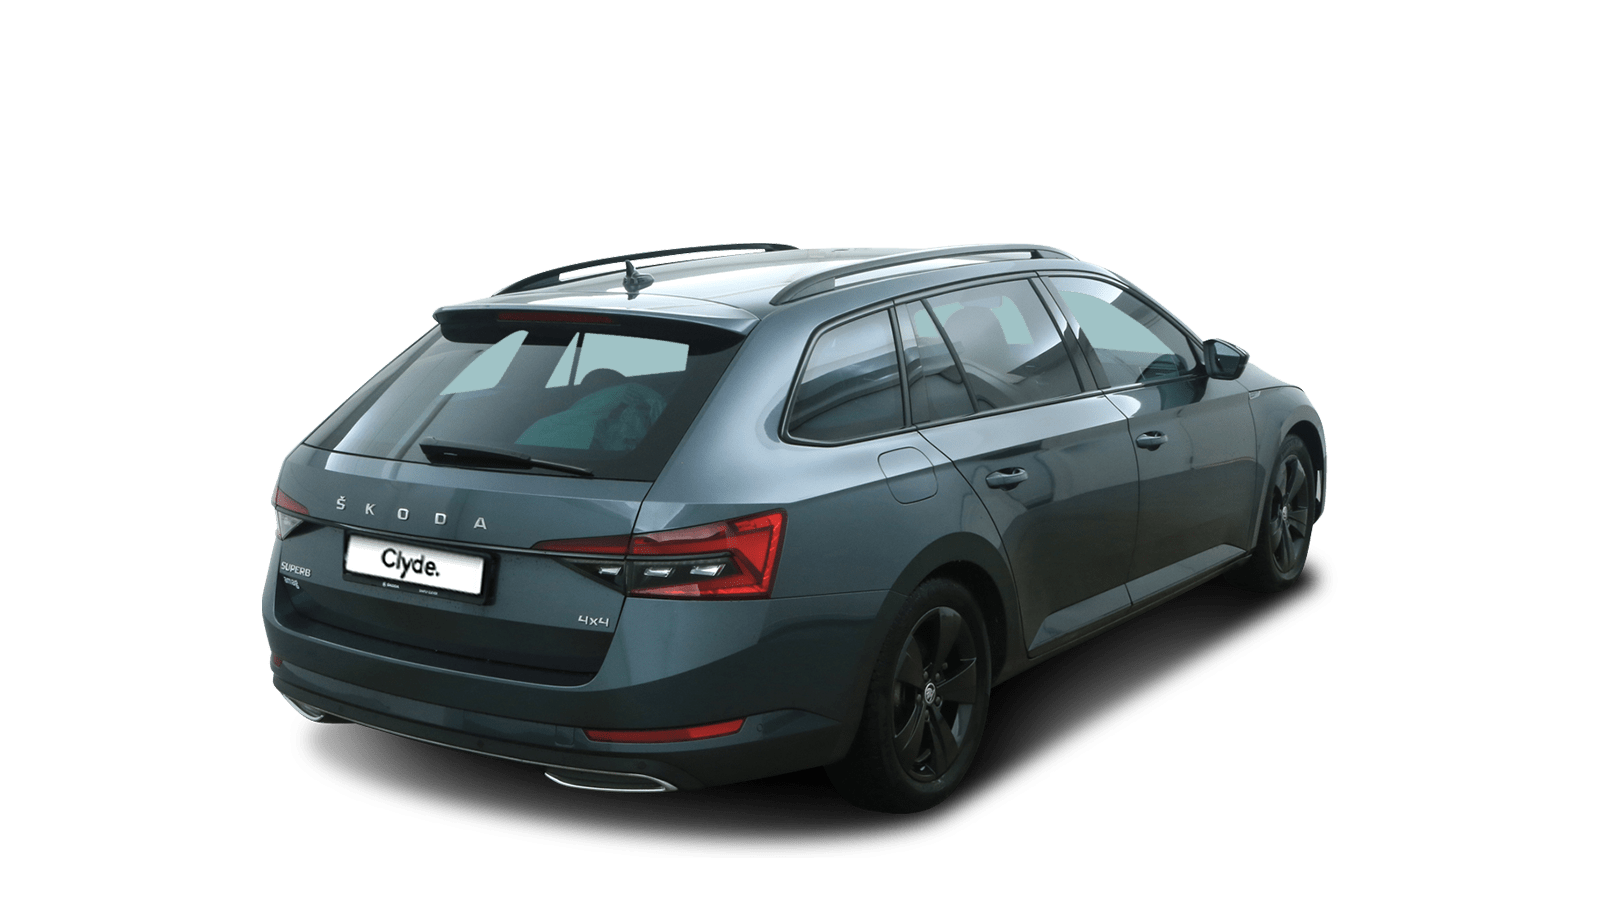 ŠKODA Superb Grey back - Clyde car subscription